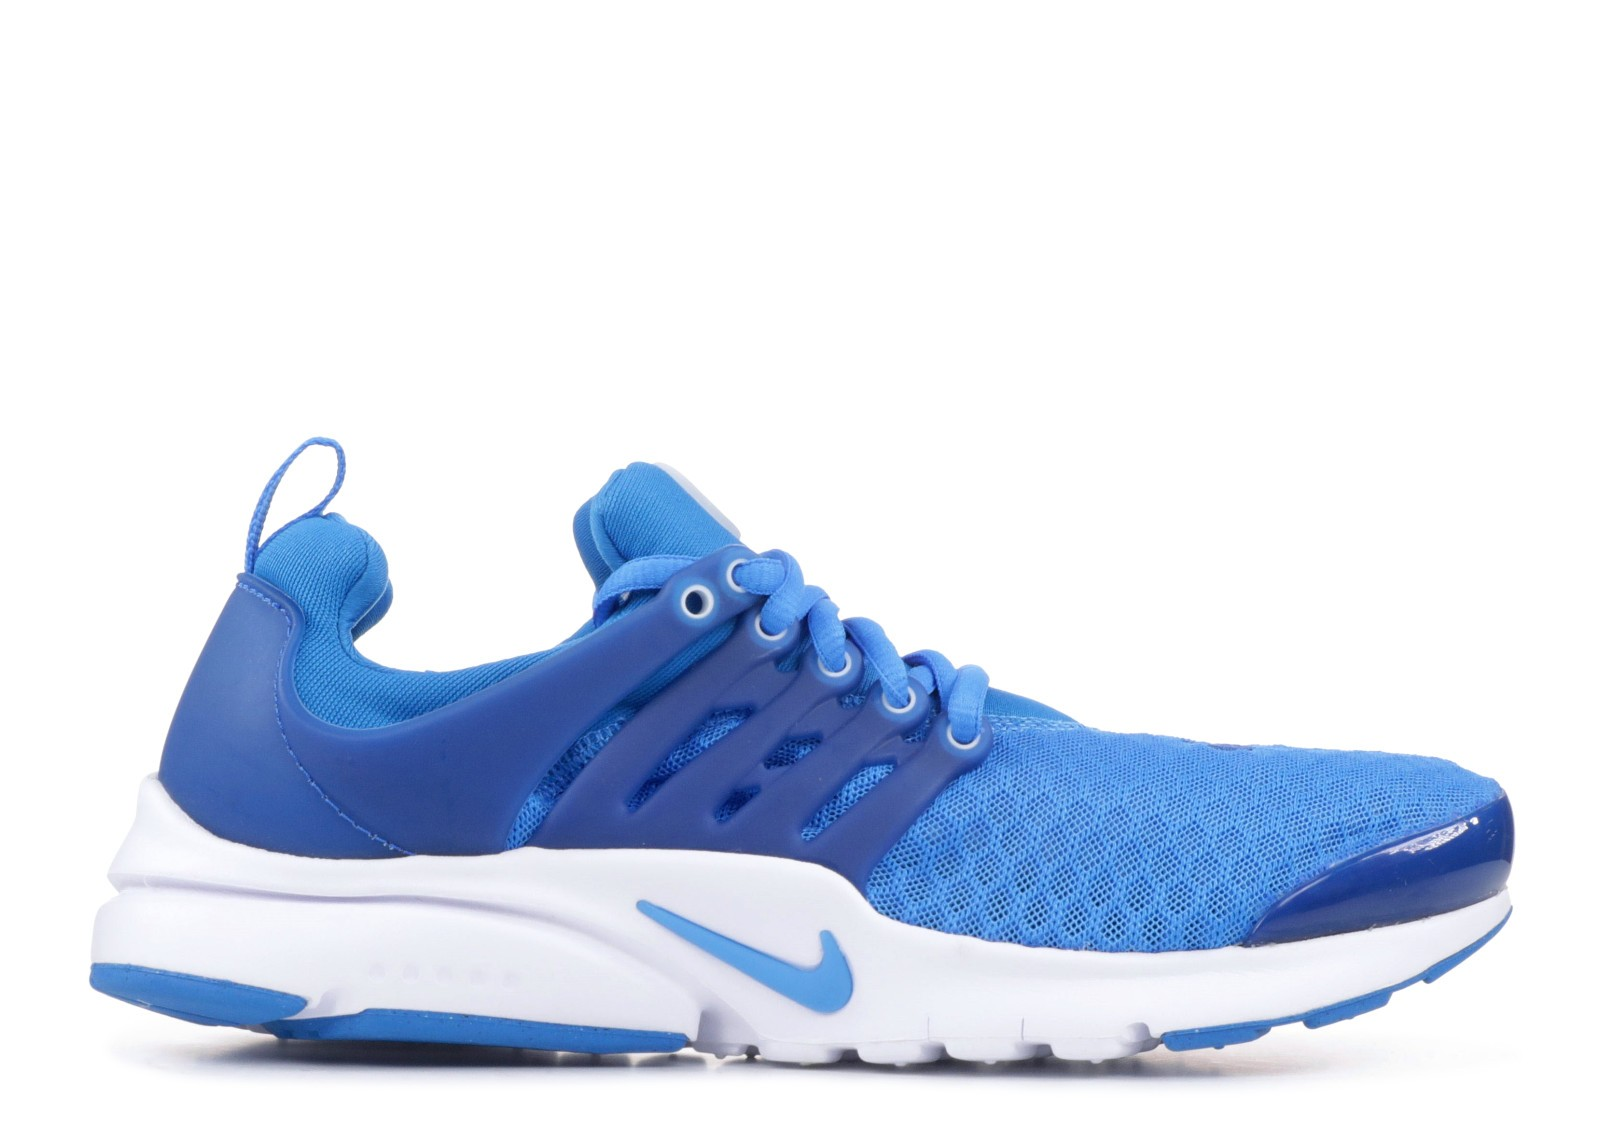 e9218891c429 Nike Presto Br GS Blue Photo White Royal Team 832250-400 - Febbuy